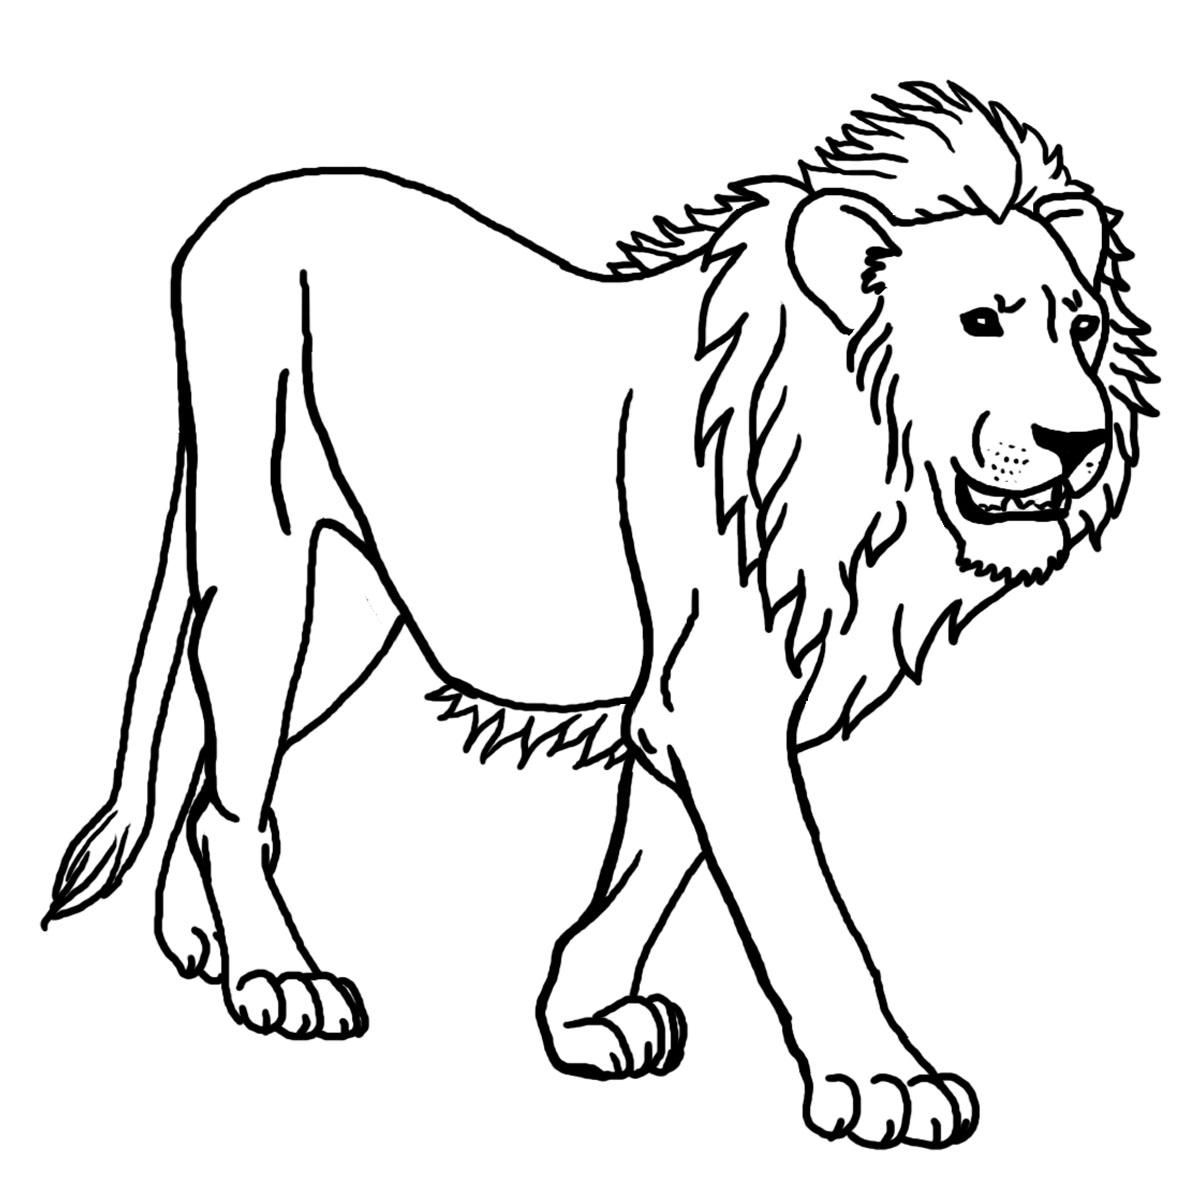 Big Cat clipart lion outline And Lion and WikiClipArt black